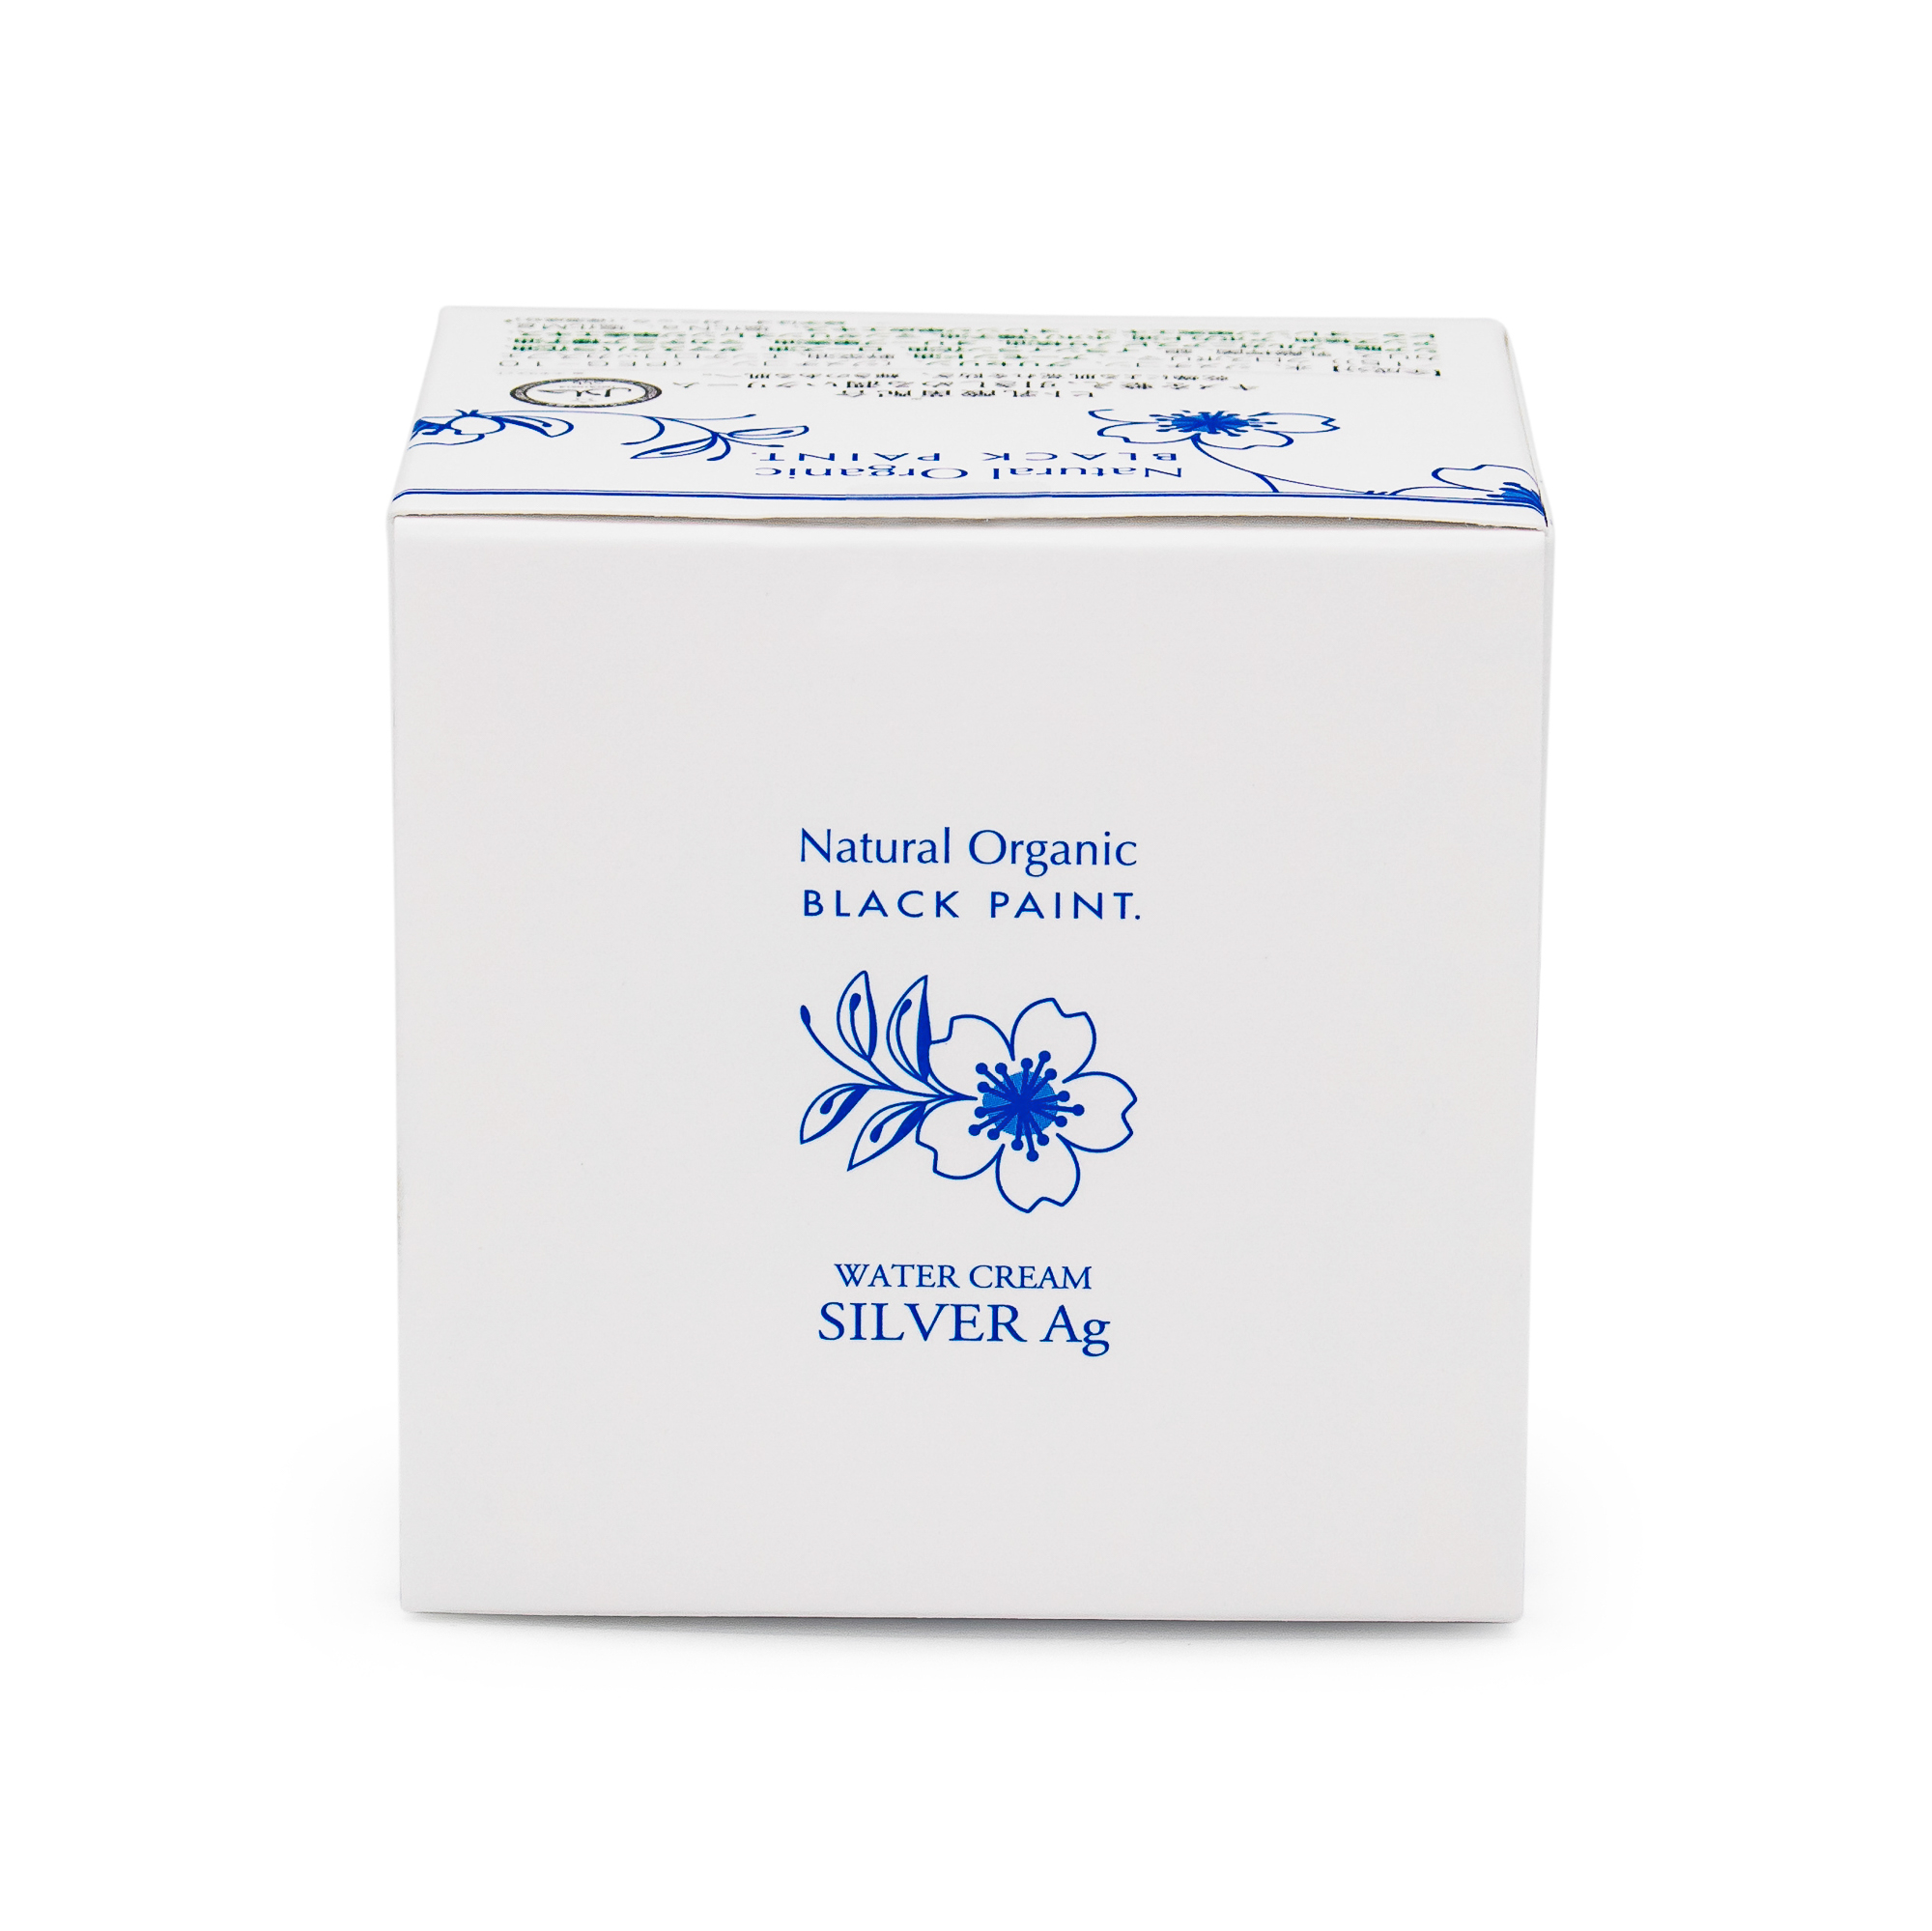 Water Cream Silver 100g with Human Microbiome - box top